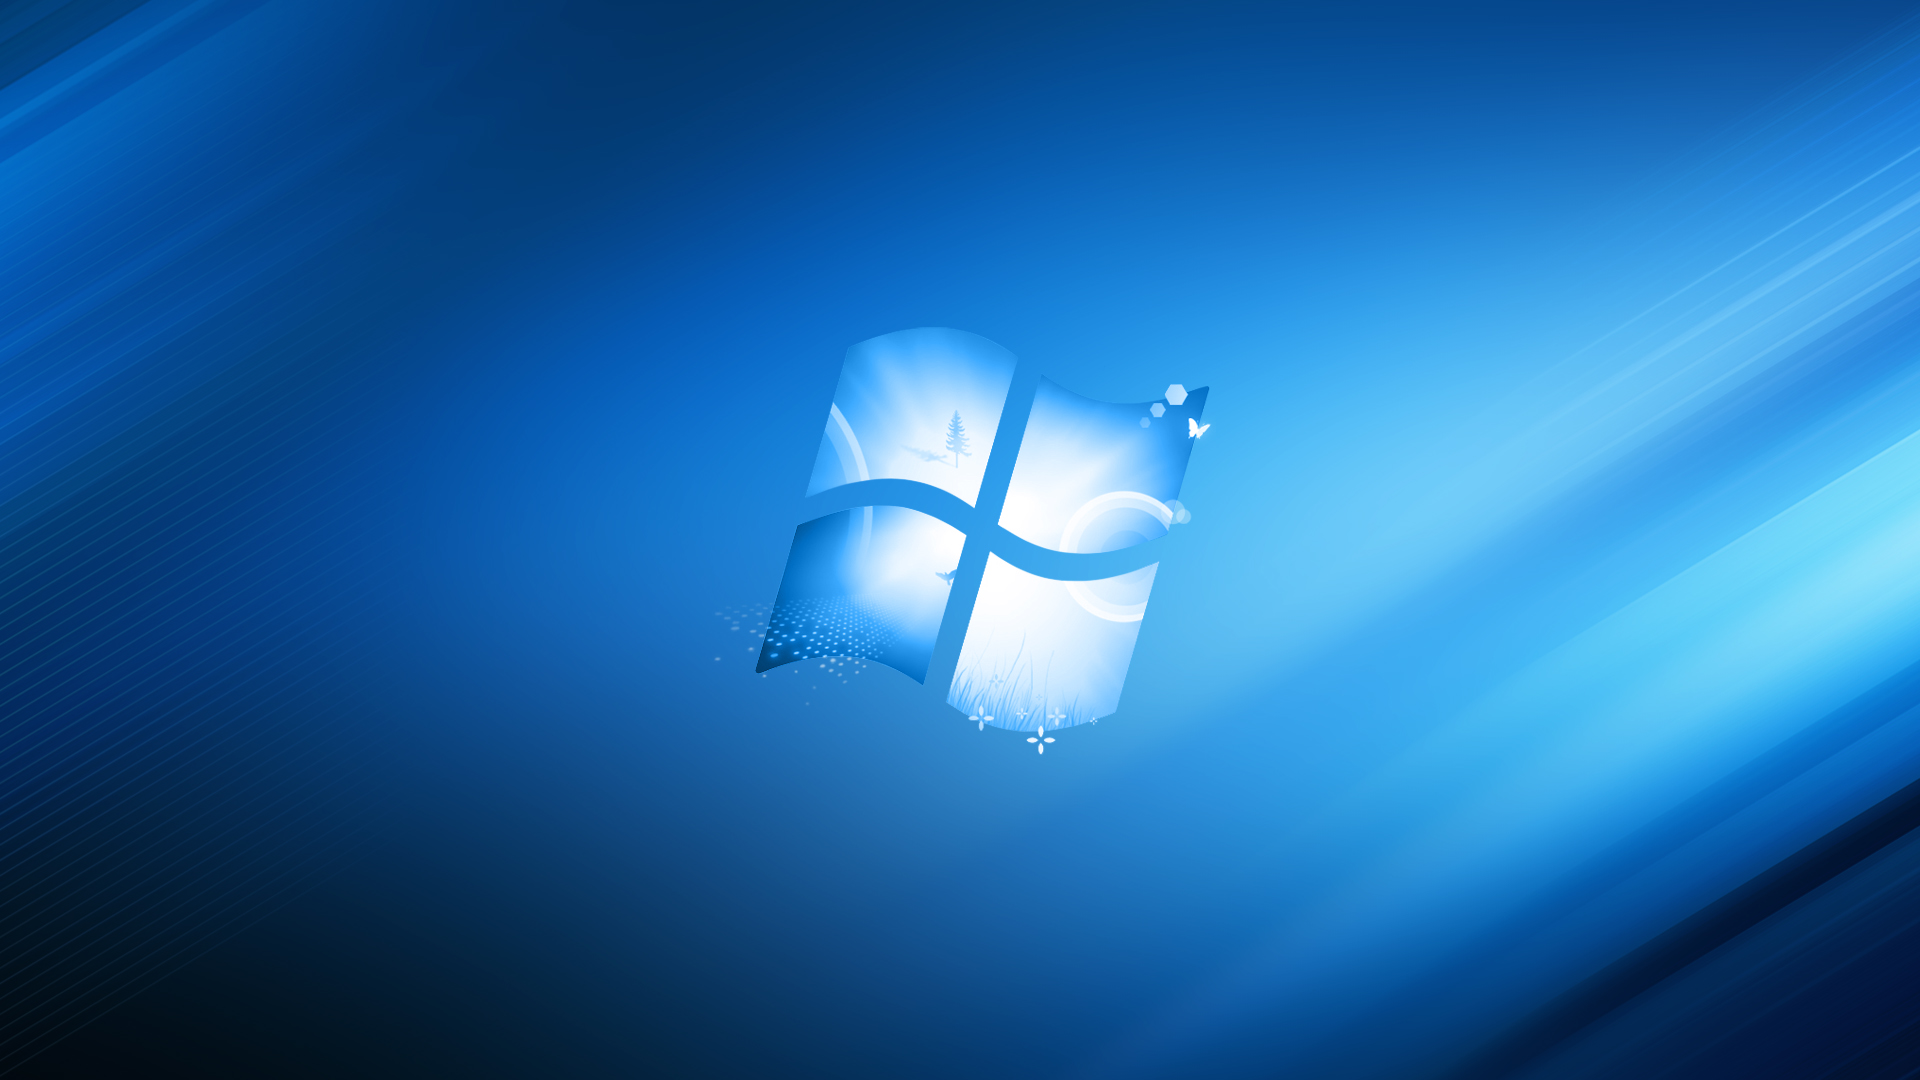 wallpaper windows: